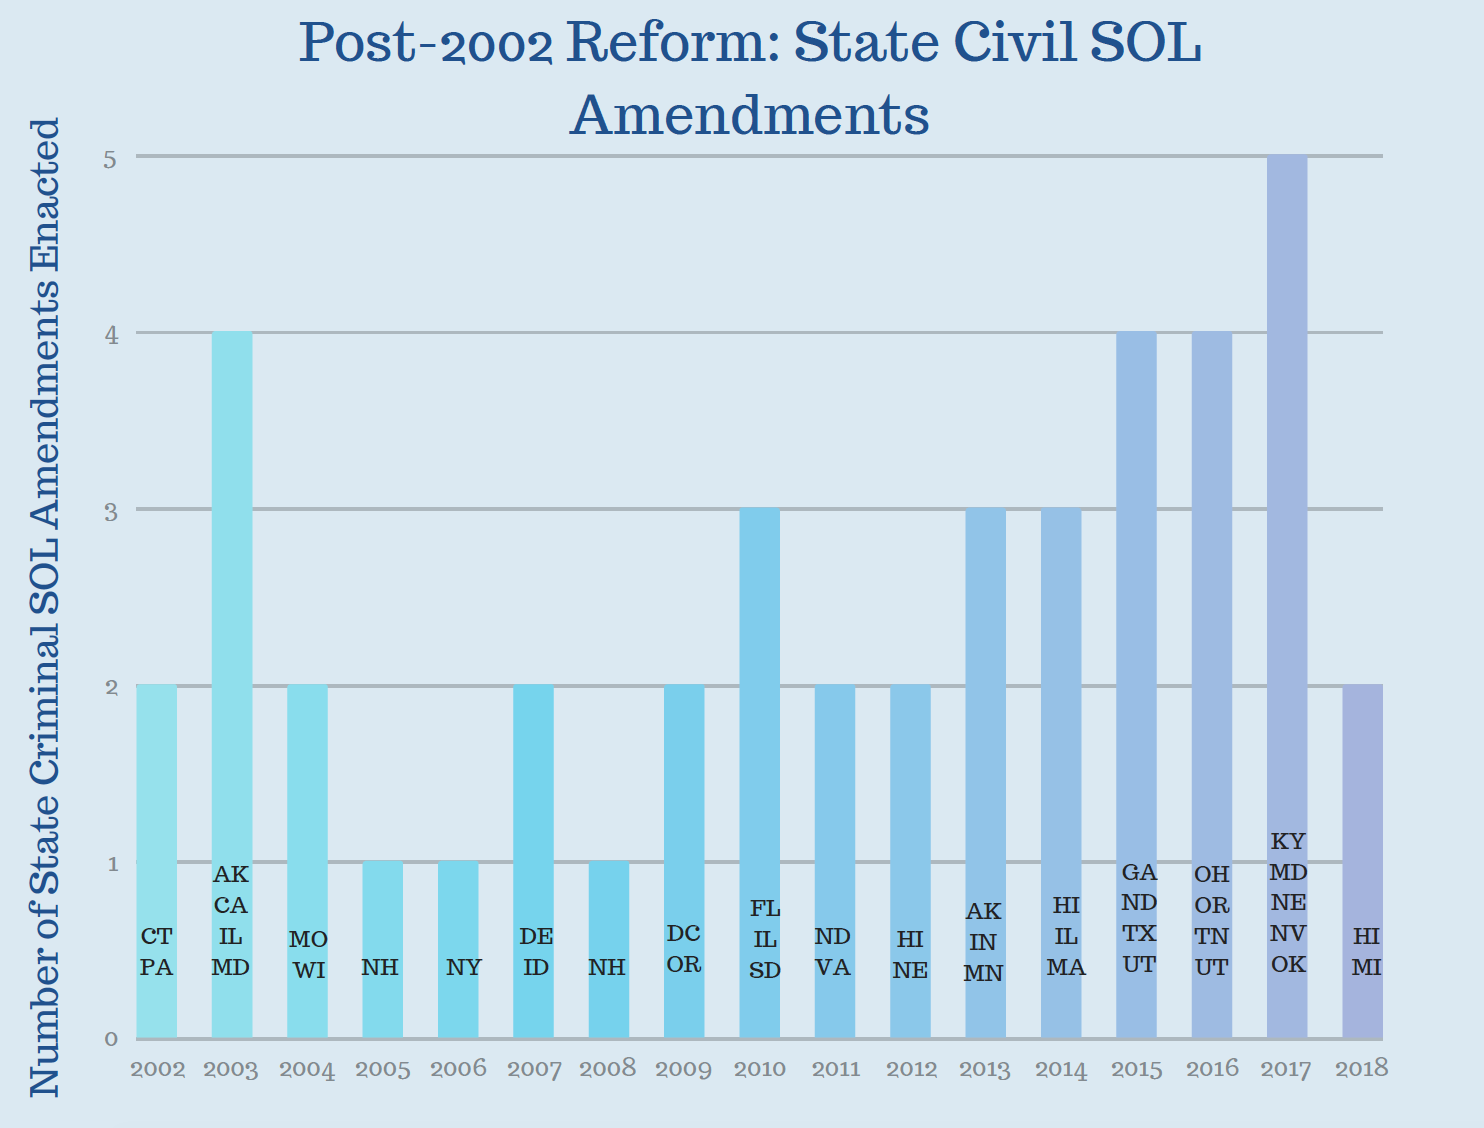 Post- 2002 Reform state civil sol amendments.png